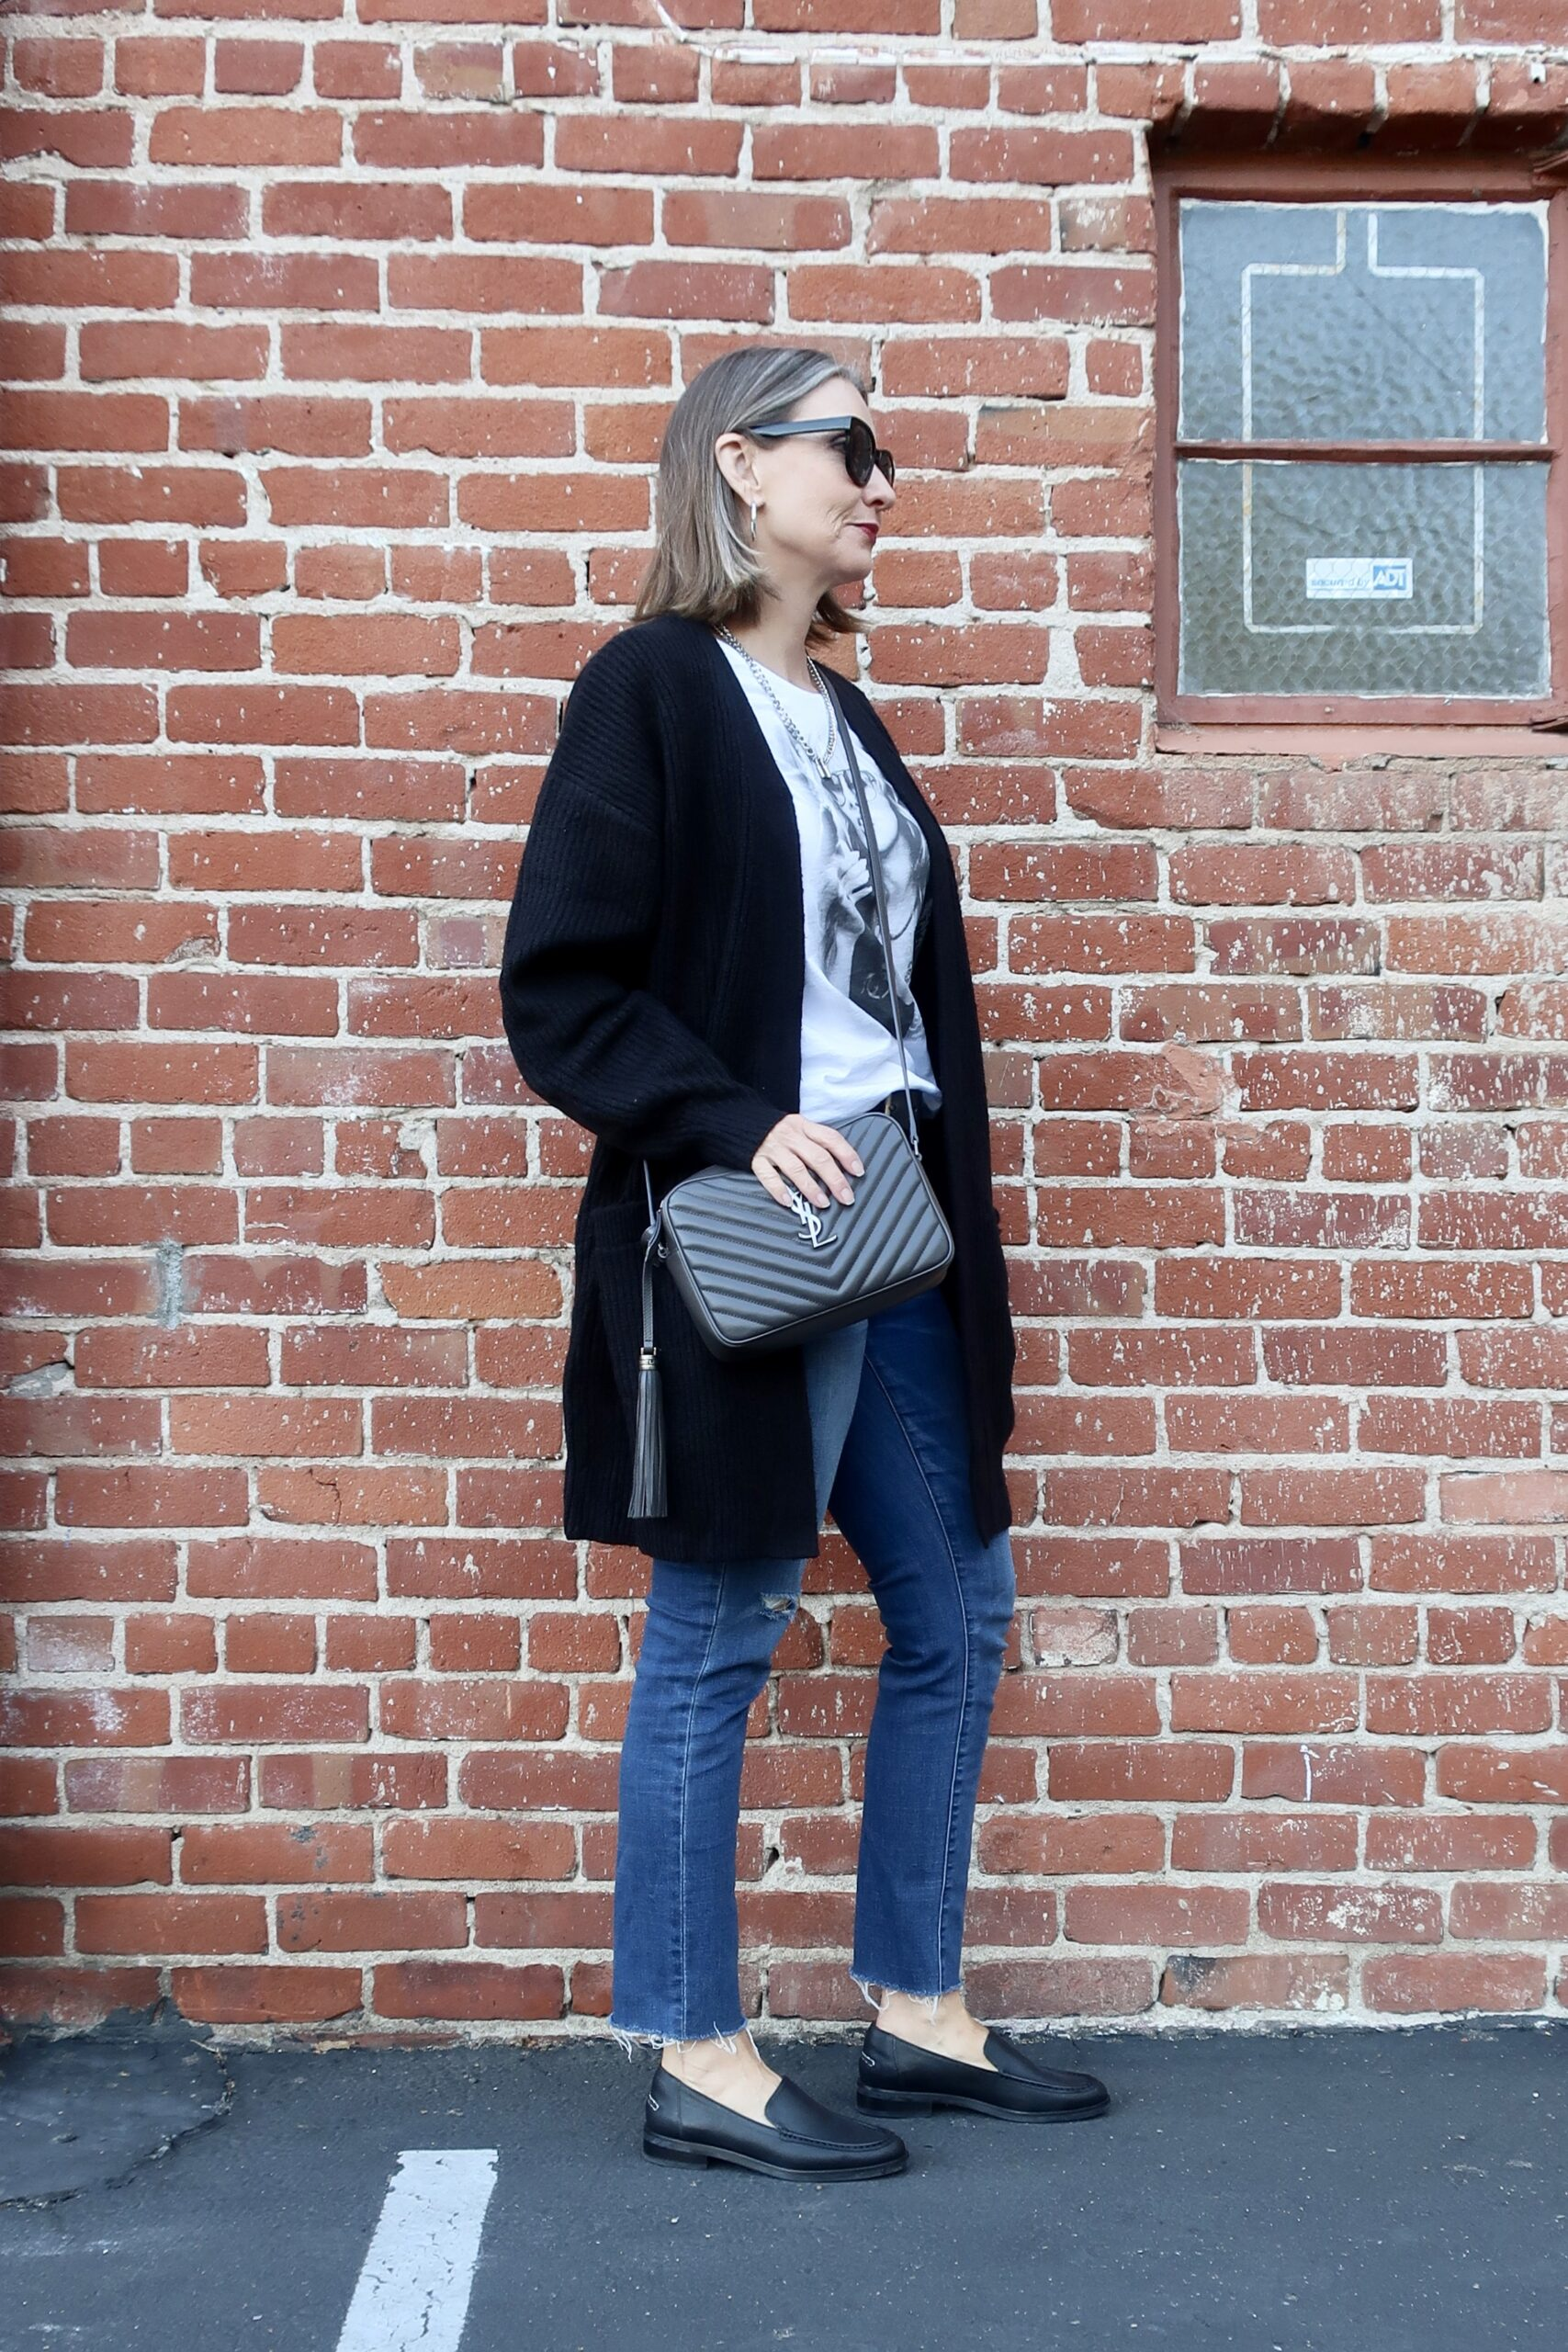 urban casual OOTD, urban chic over 40